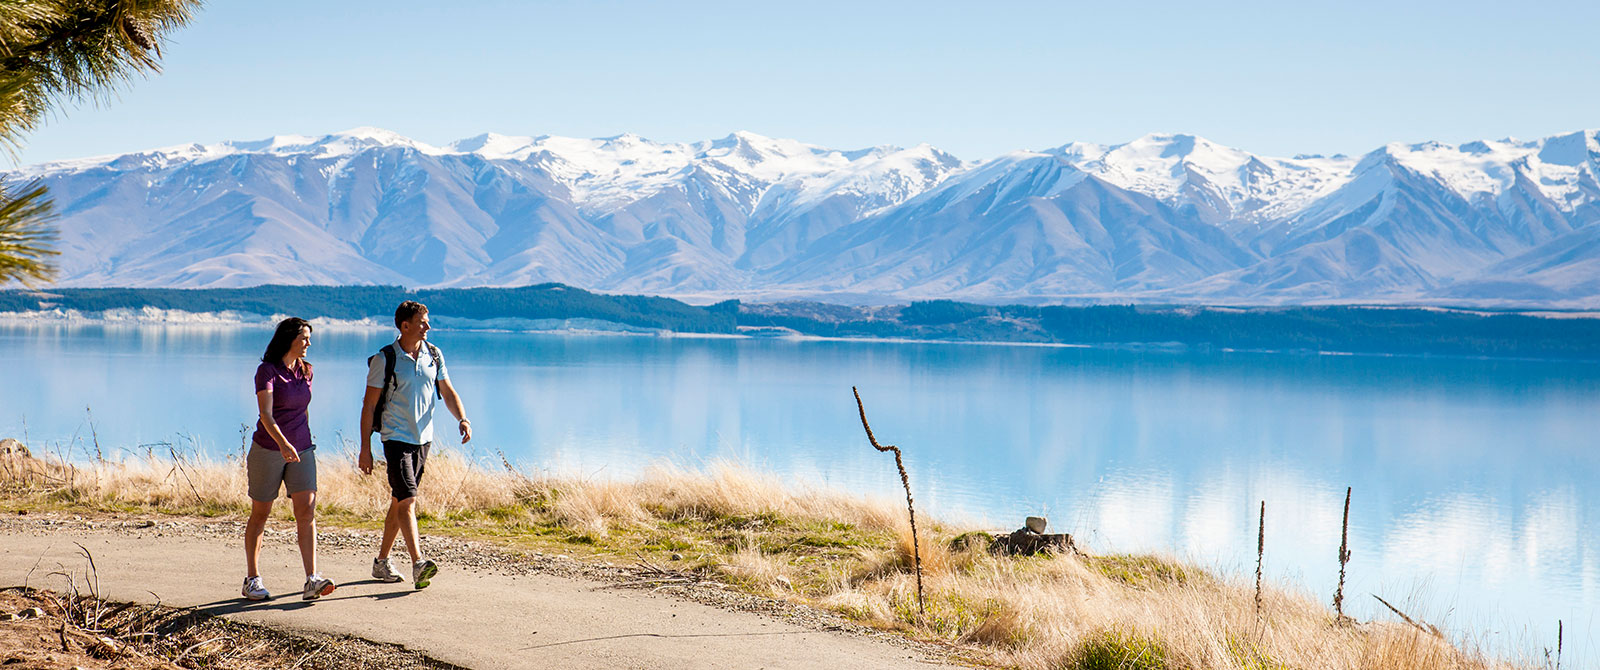 Scenic Walks in Mt Cook and Aoraki - Book Your Trip to New Zealand - New Zealand Travel Agency